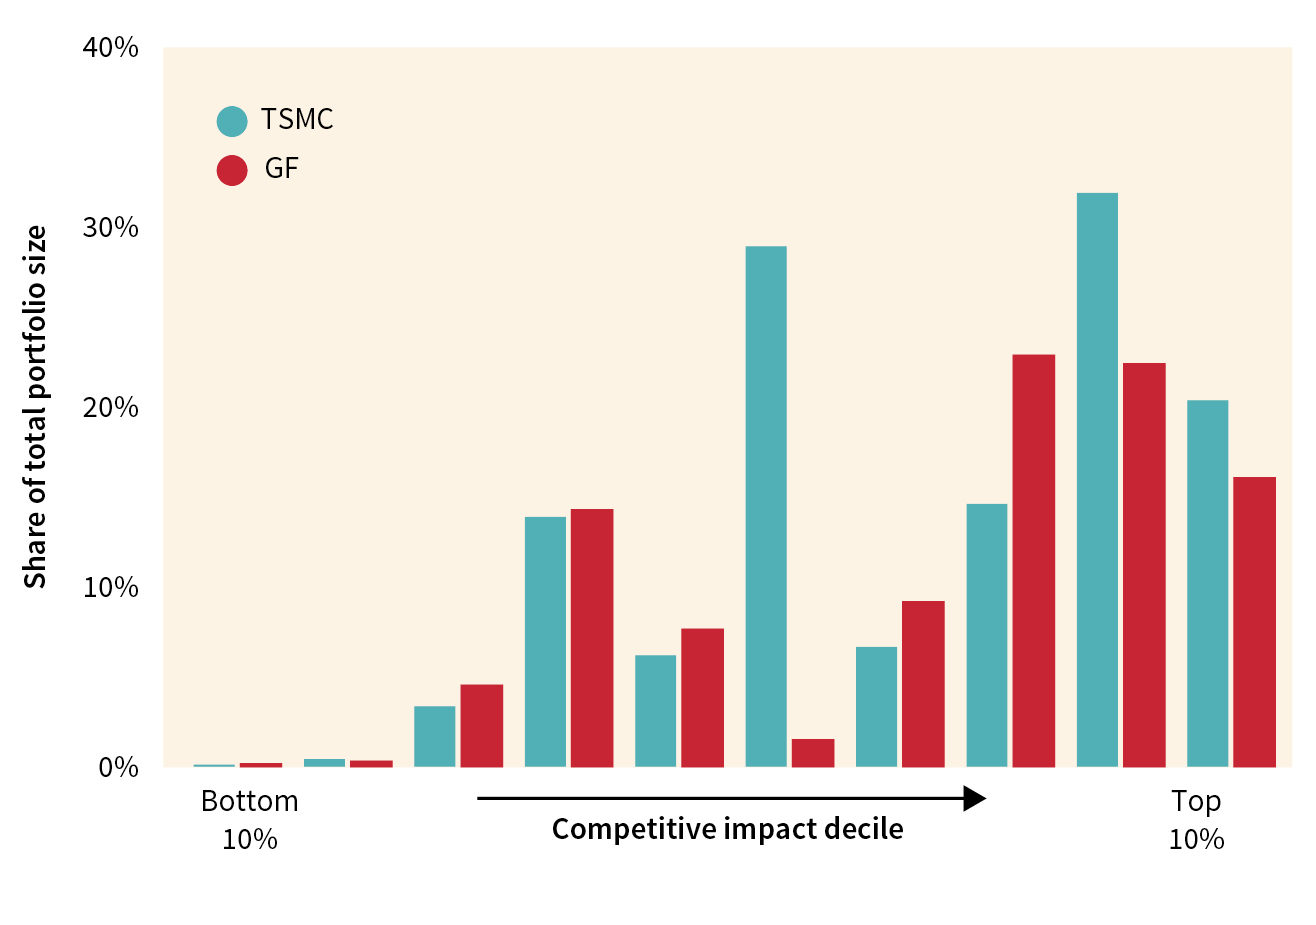 FIGURE 2. Distribution of portfolios compared to worldwide patents*